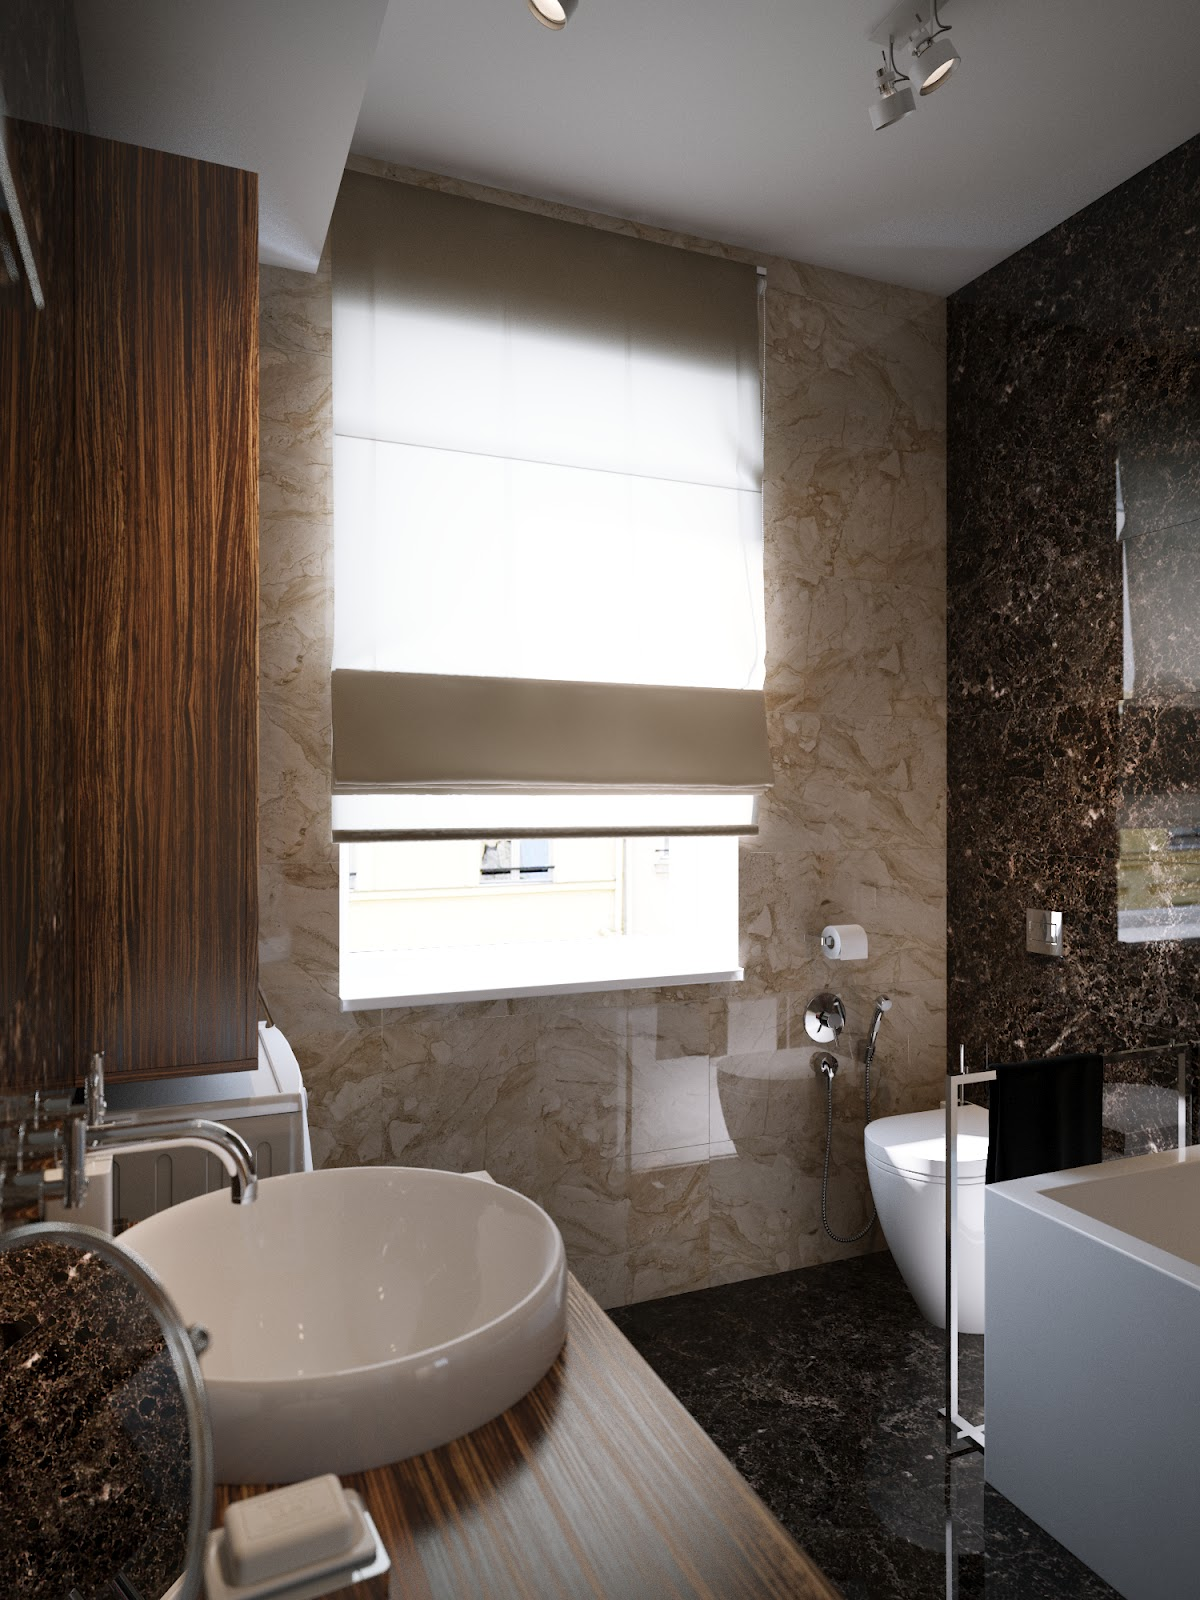 Modern bathroom design scheme interior design ideas for Bathroom ideas modern